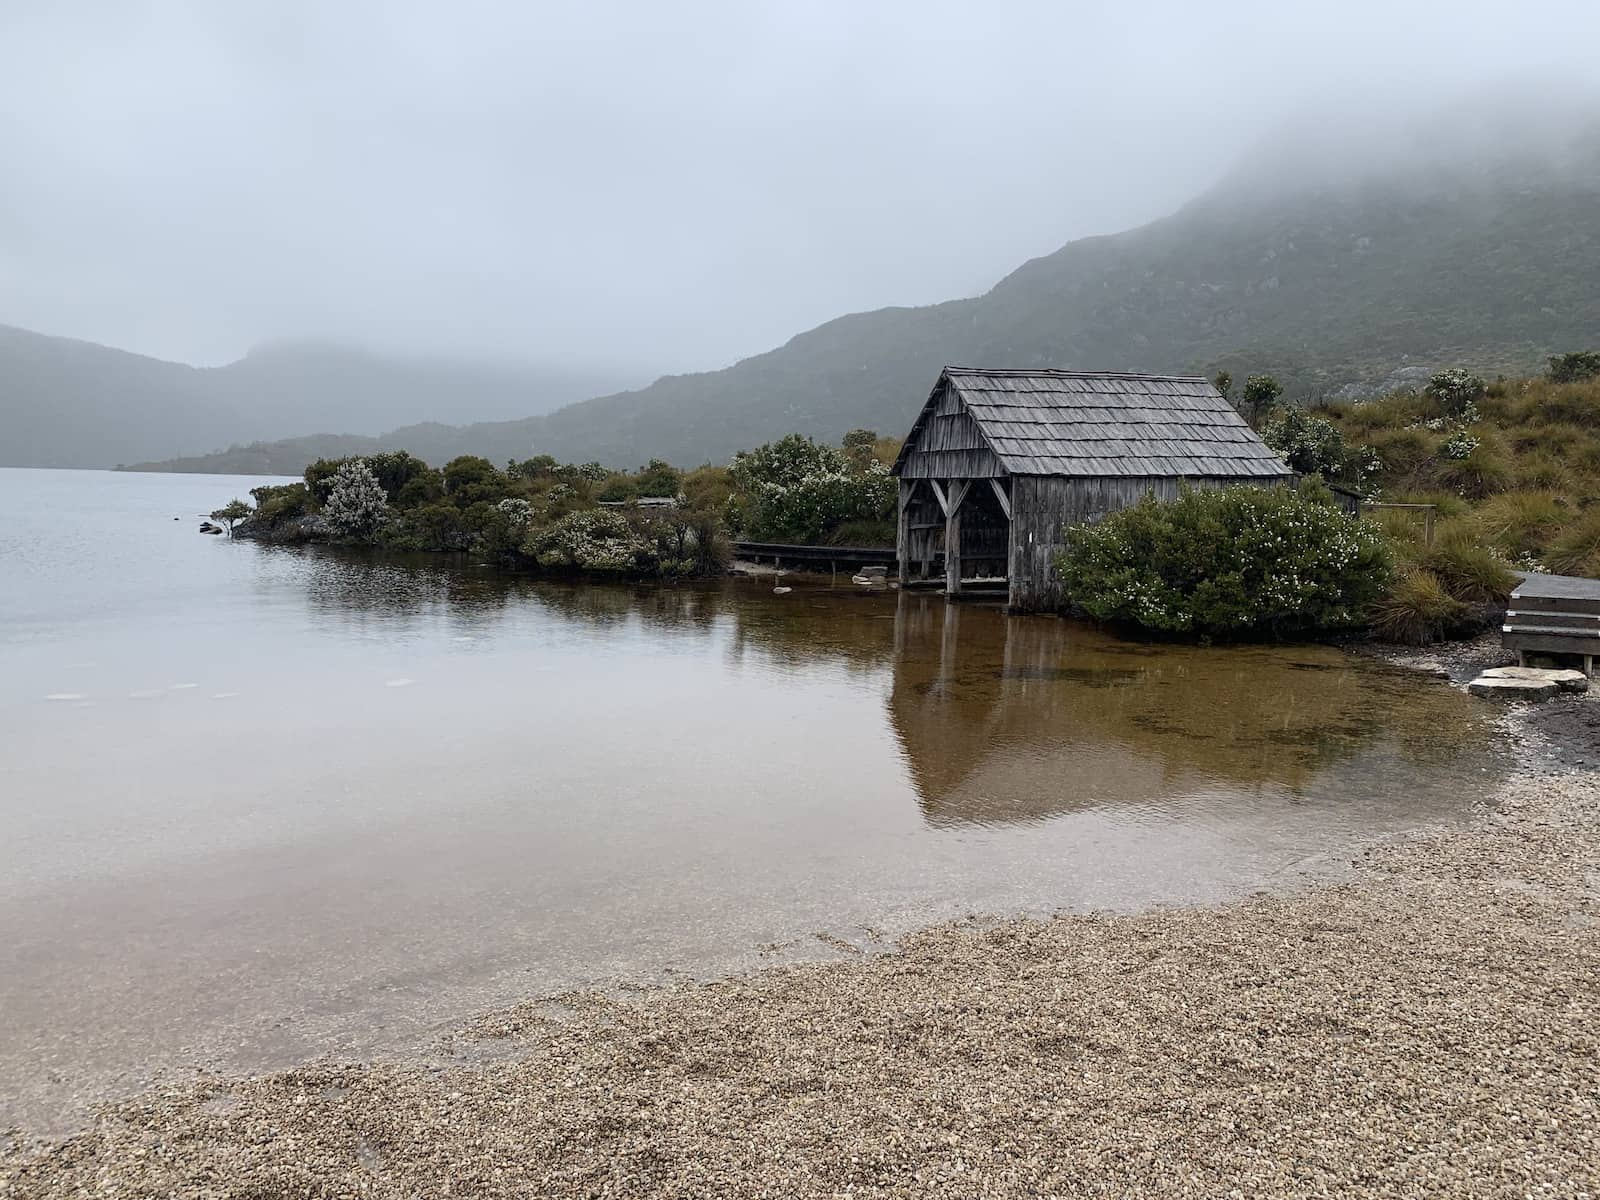 A boat shed at the side of a lake, on an overcast, wet day